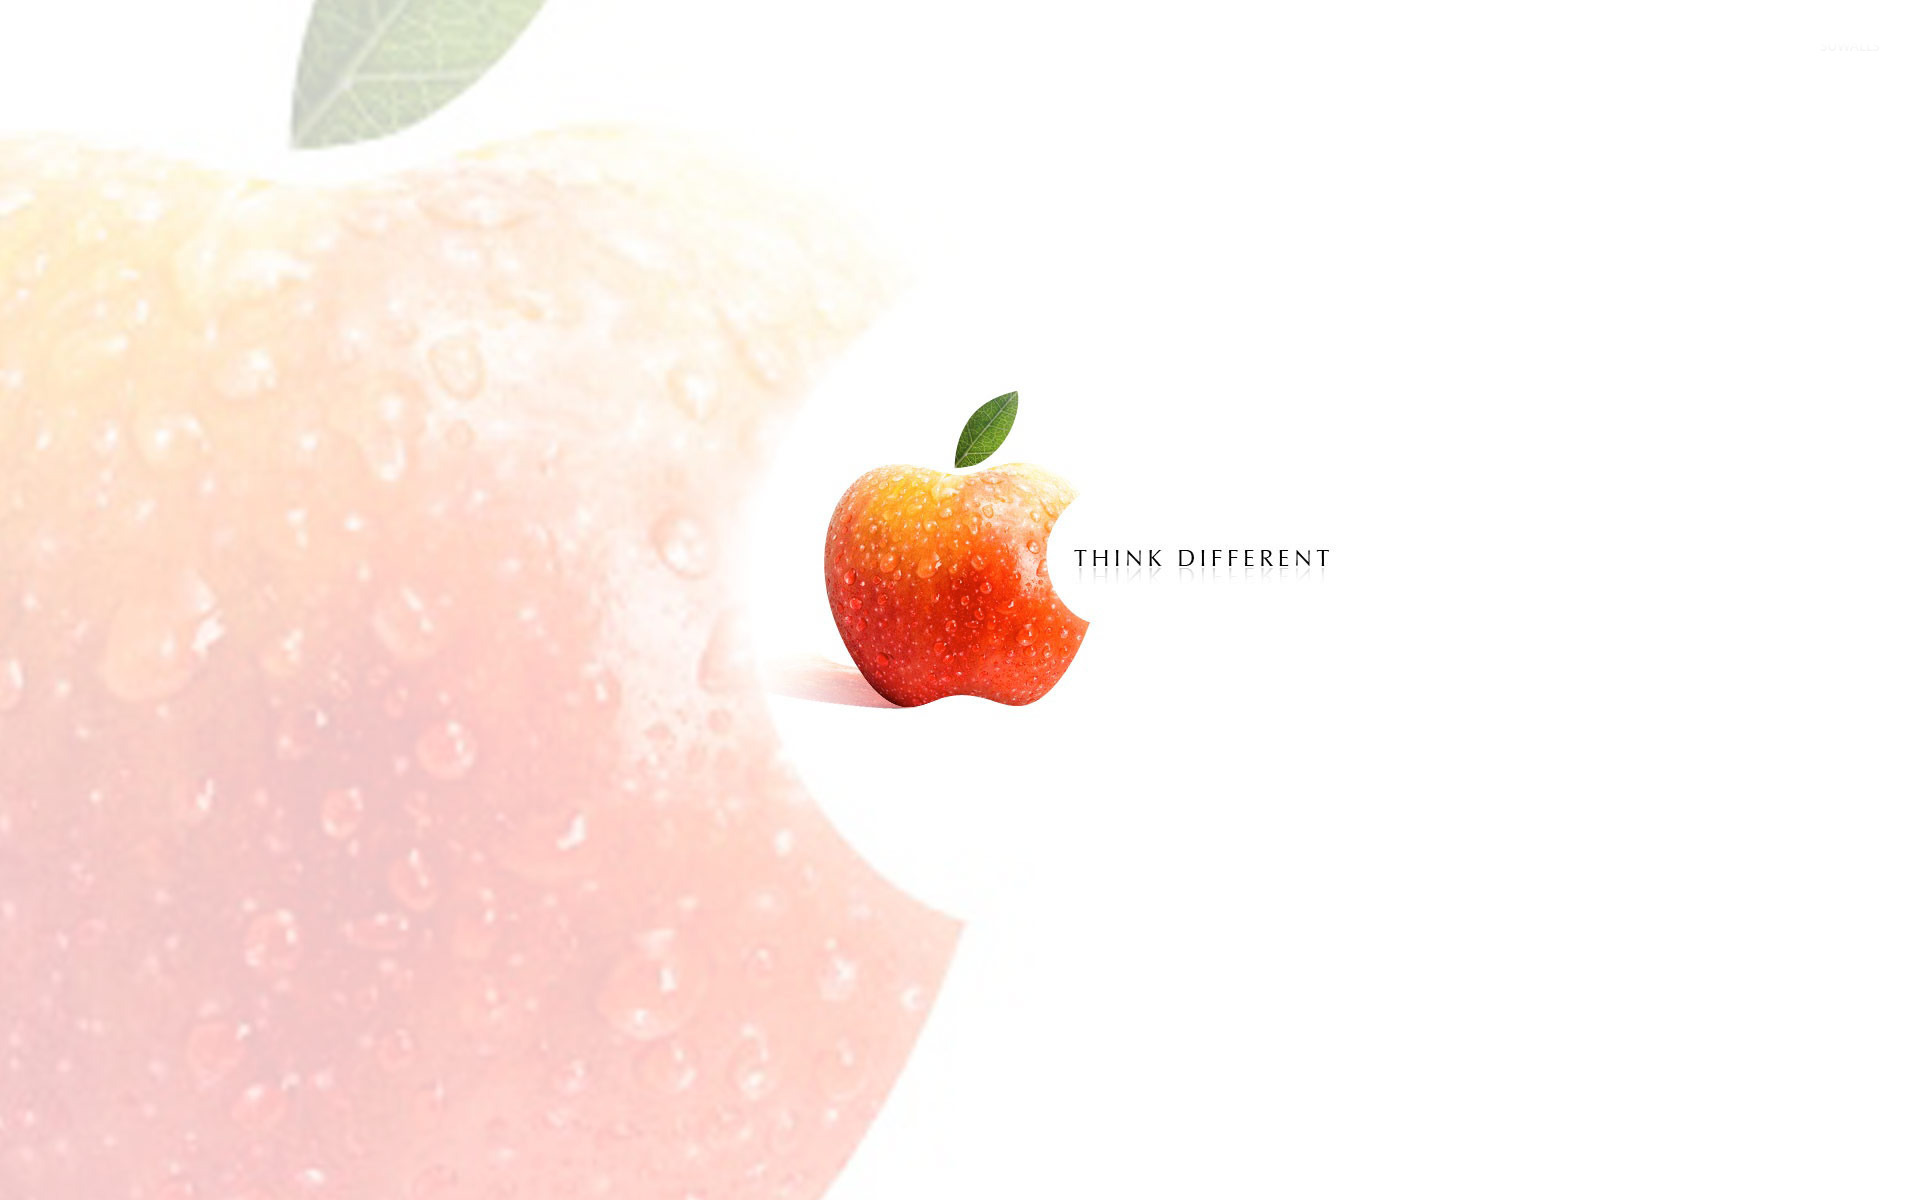 Apple Think Different 2 Wallpaper Computer Wallpapers